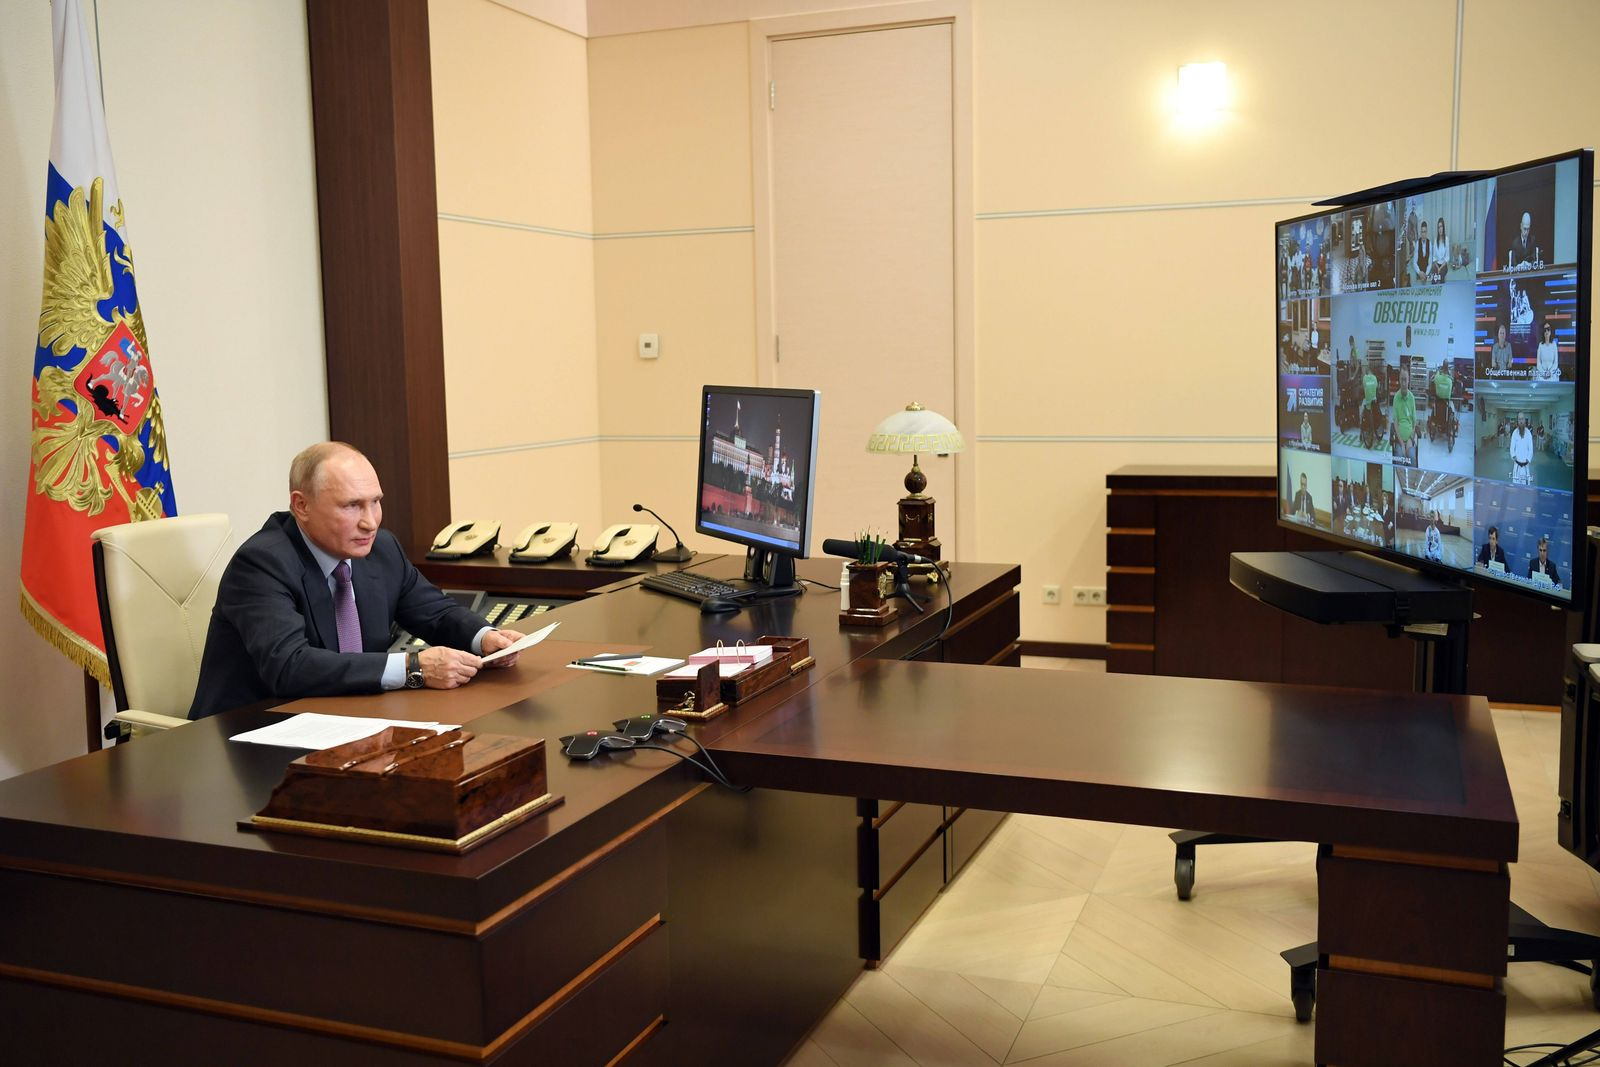 MOSCOW REGION, RUSSIA - DECEMBER 3, 2020: Russia s President Vladimir Putin holds a video conference meeting with repre